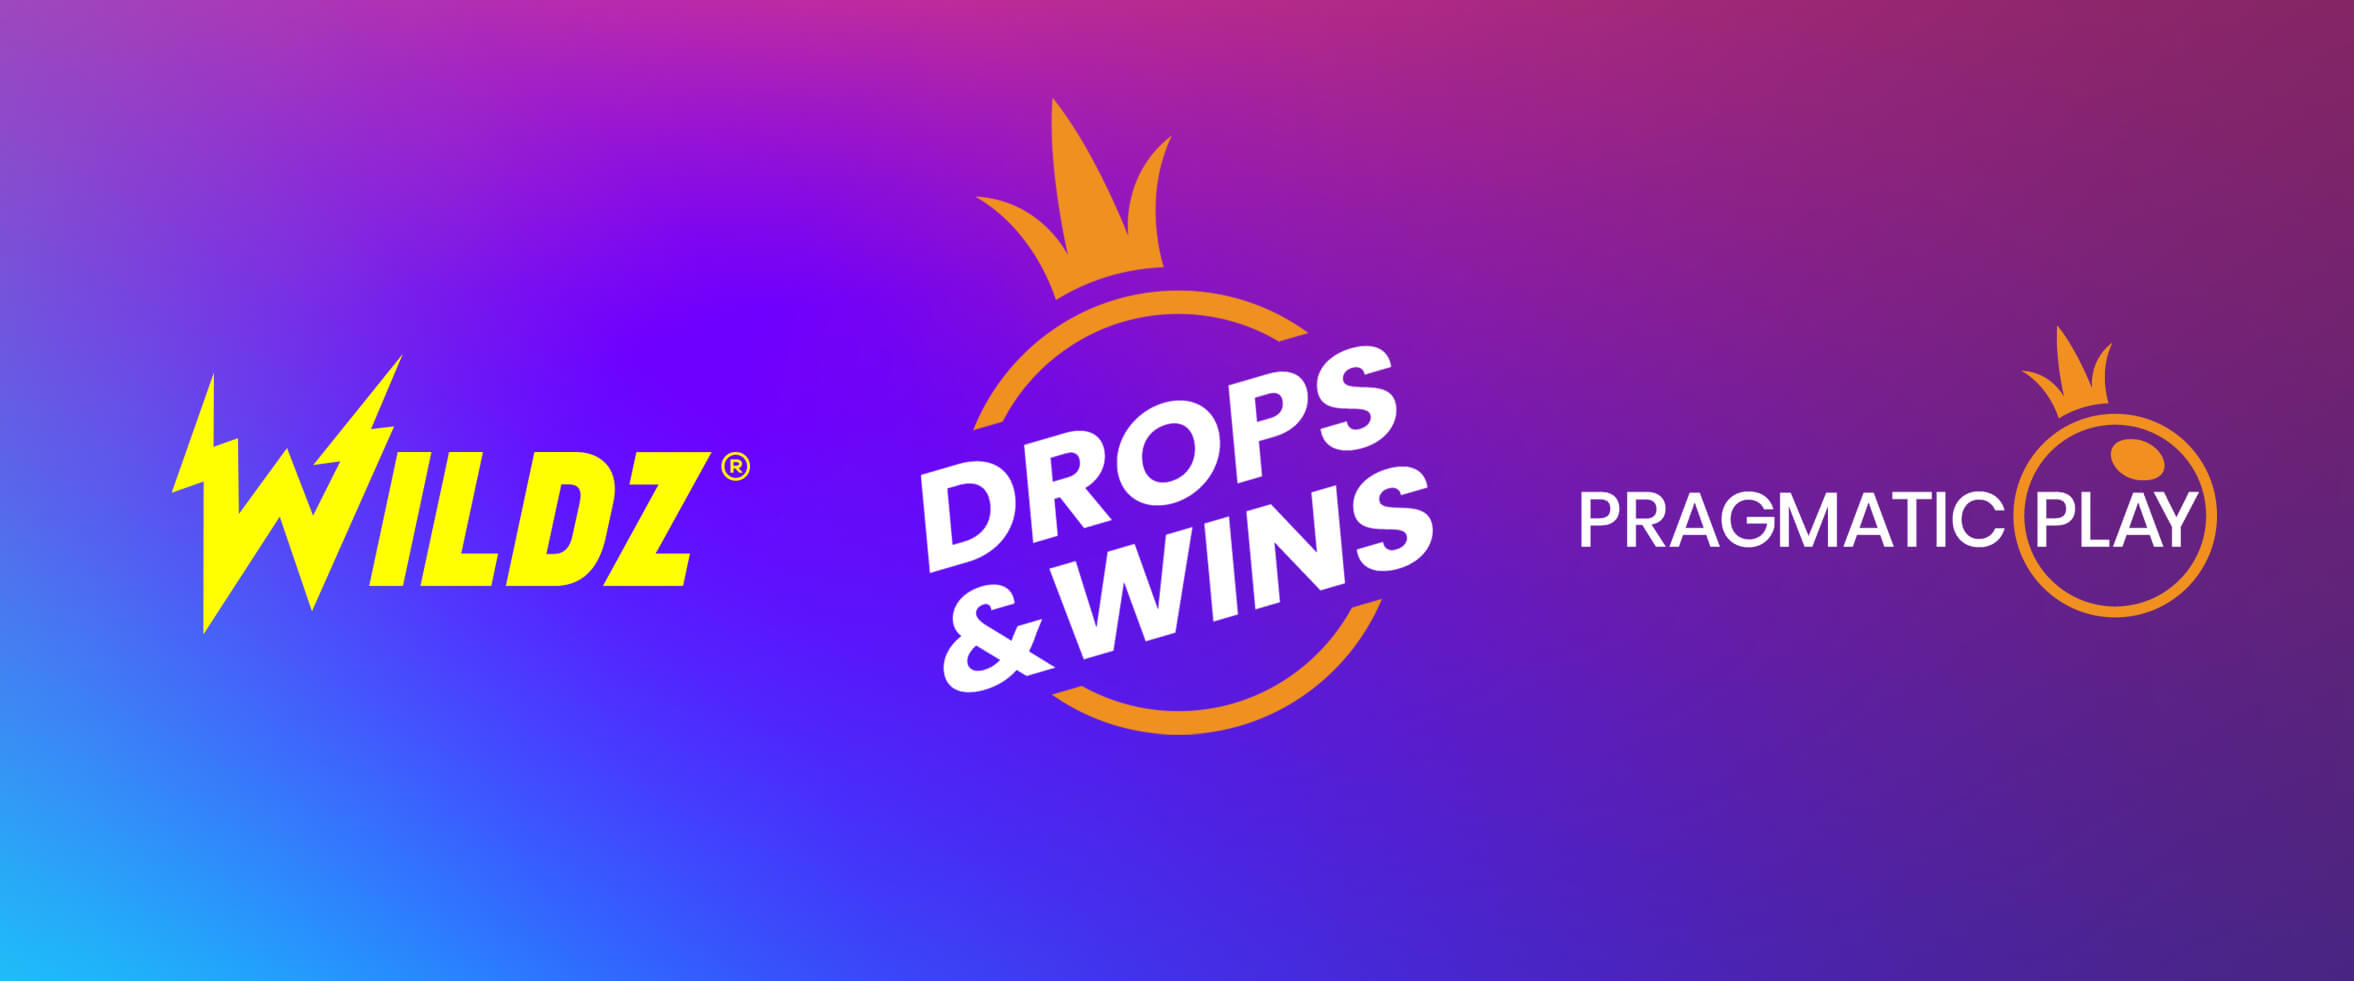 Weekly Tournaments and Daily Prizes for the Next 2 Weeks